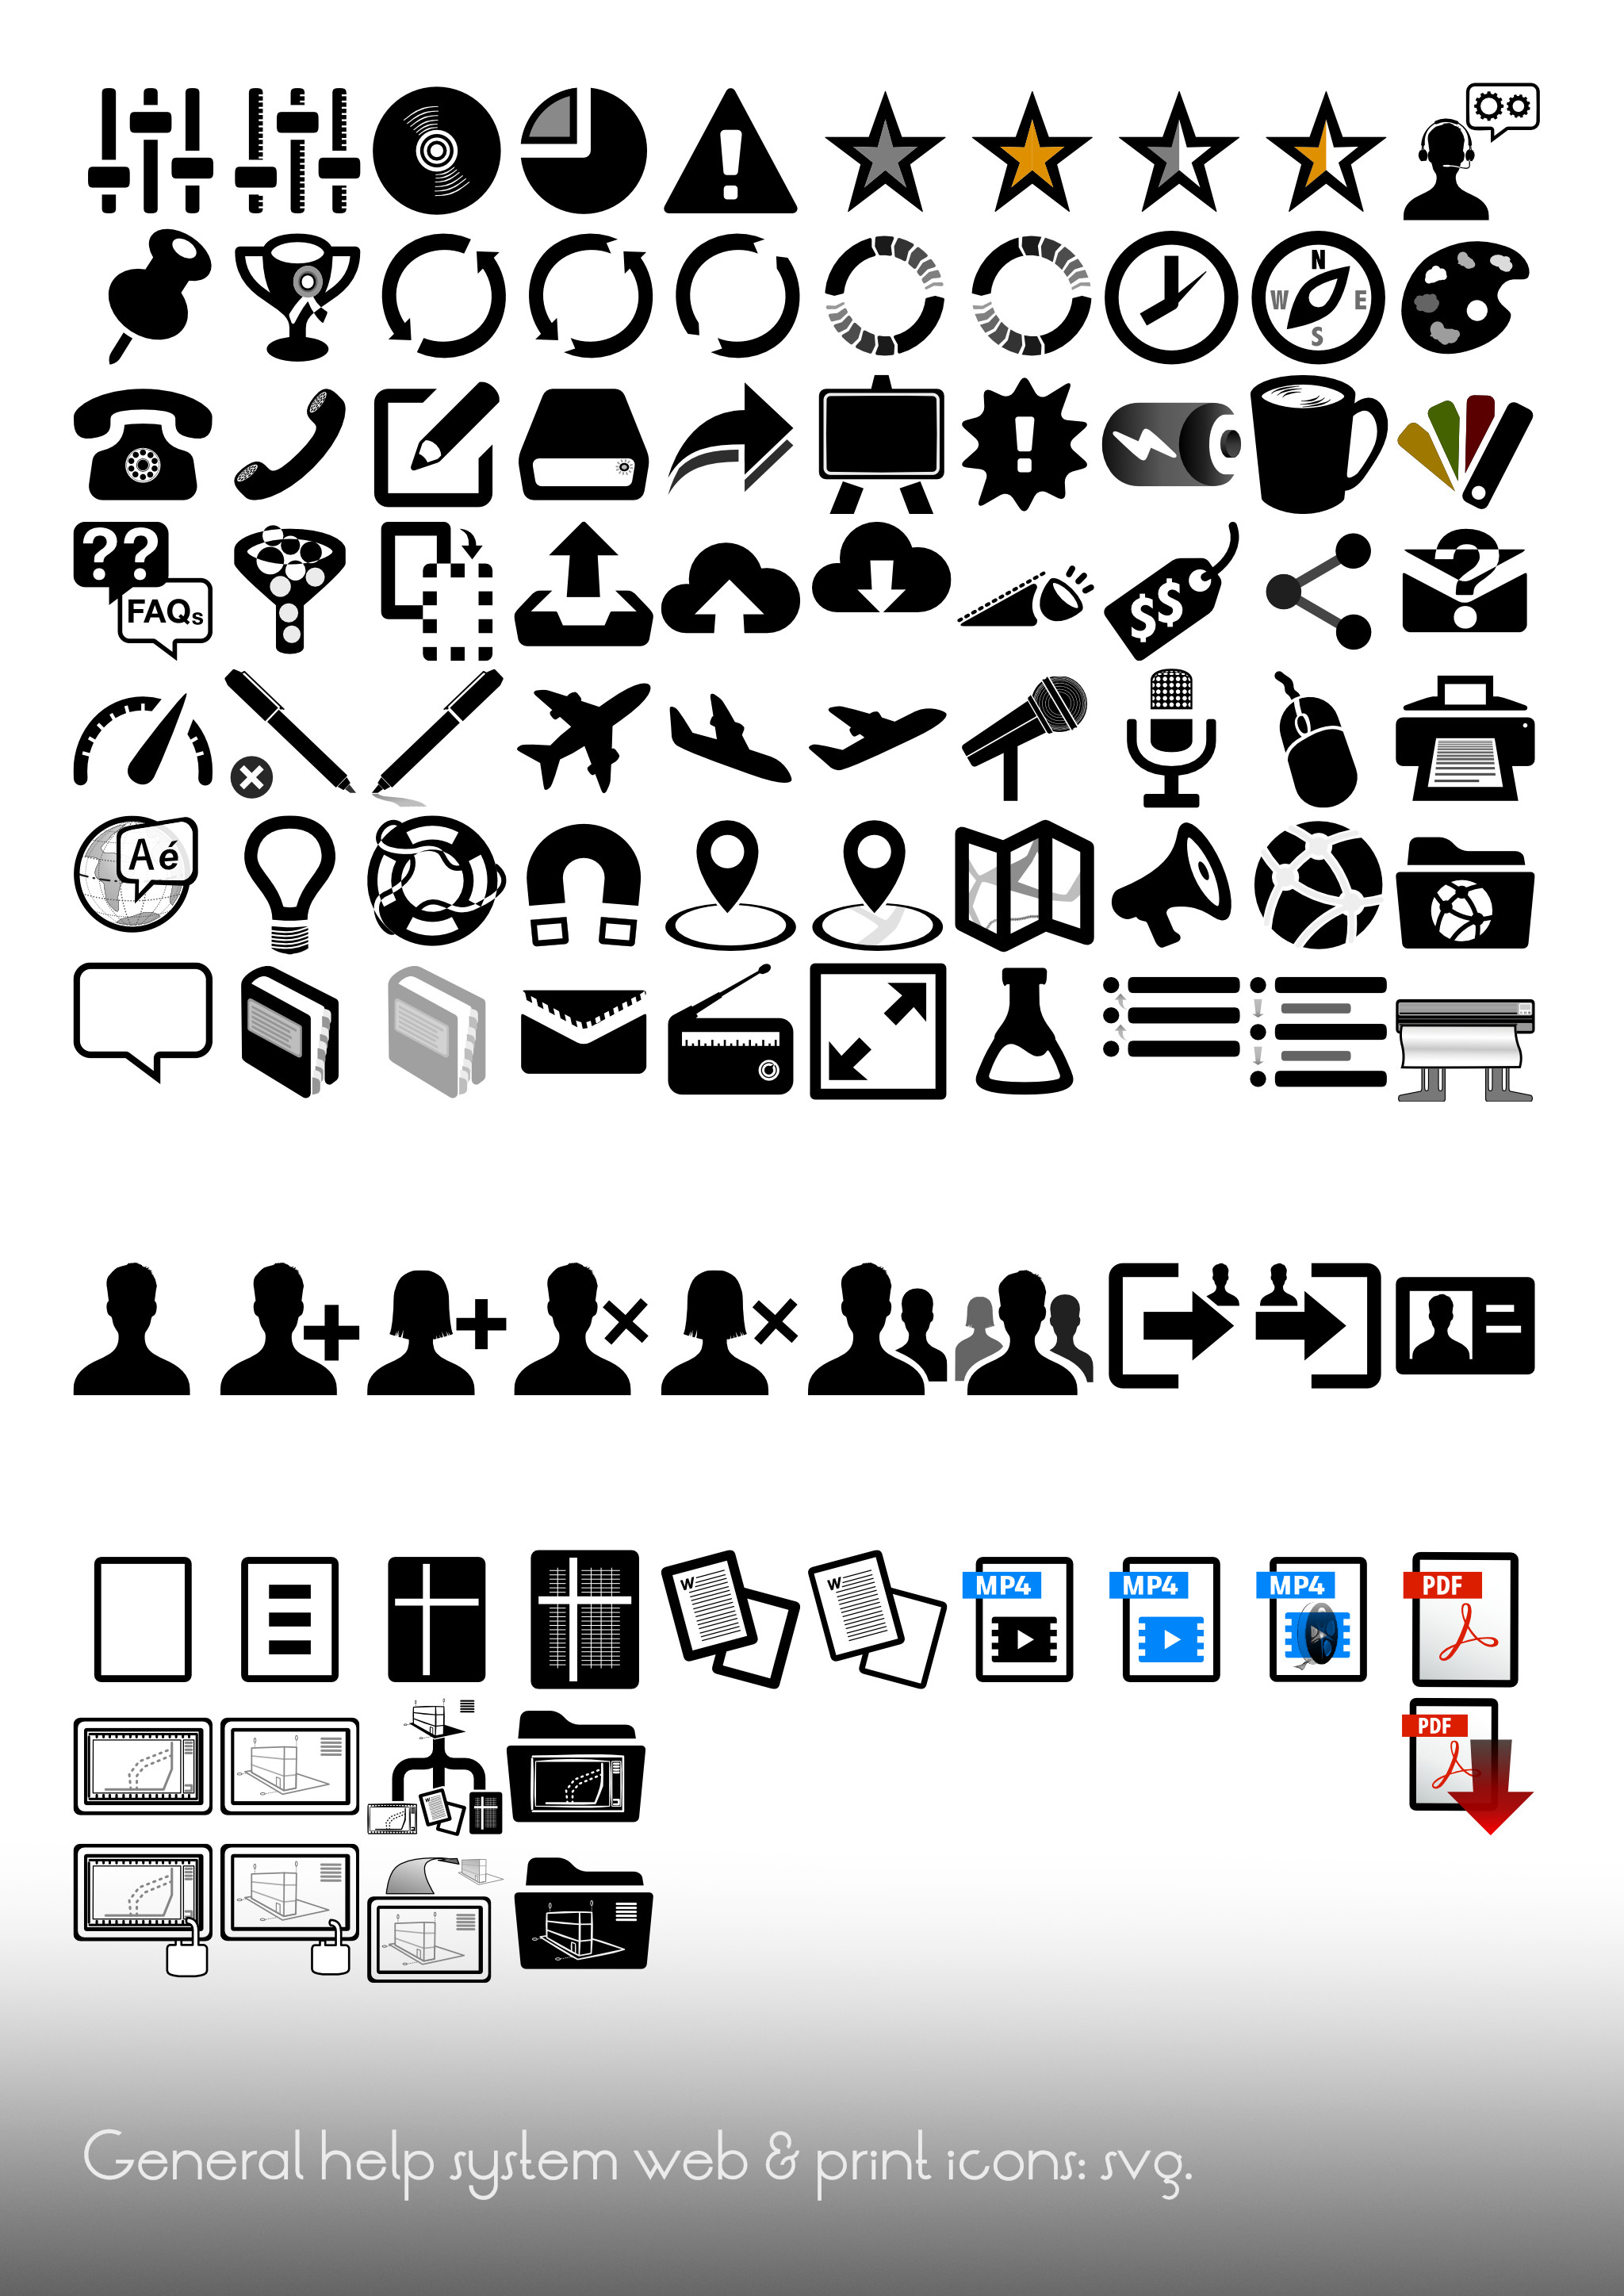 General-use icons developed for a client's extensive help system, starting with the open-source Entypo+ system as base; there are design variations created to keep stylistic consistency and many new icons designed for needed concepts.